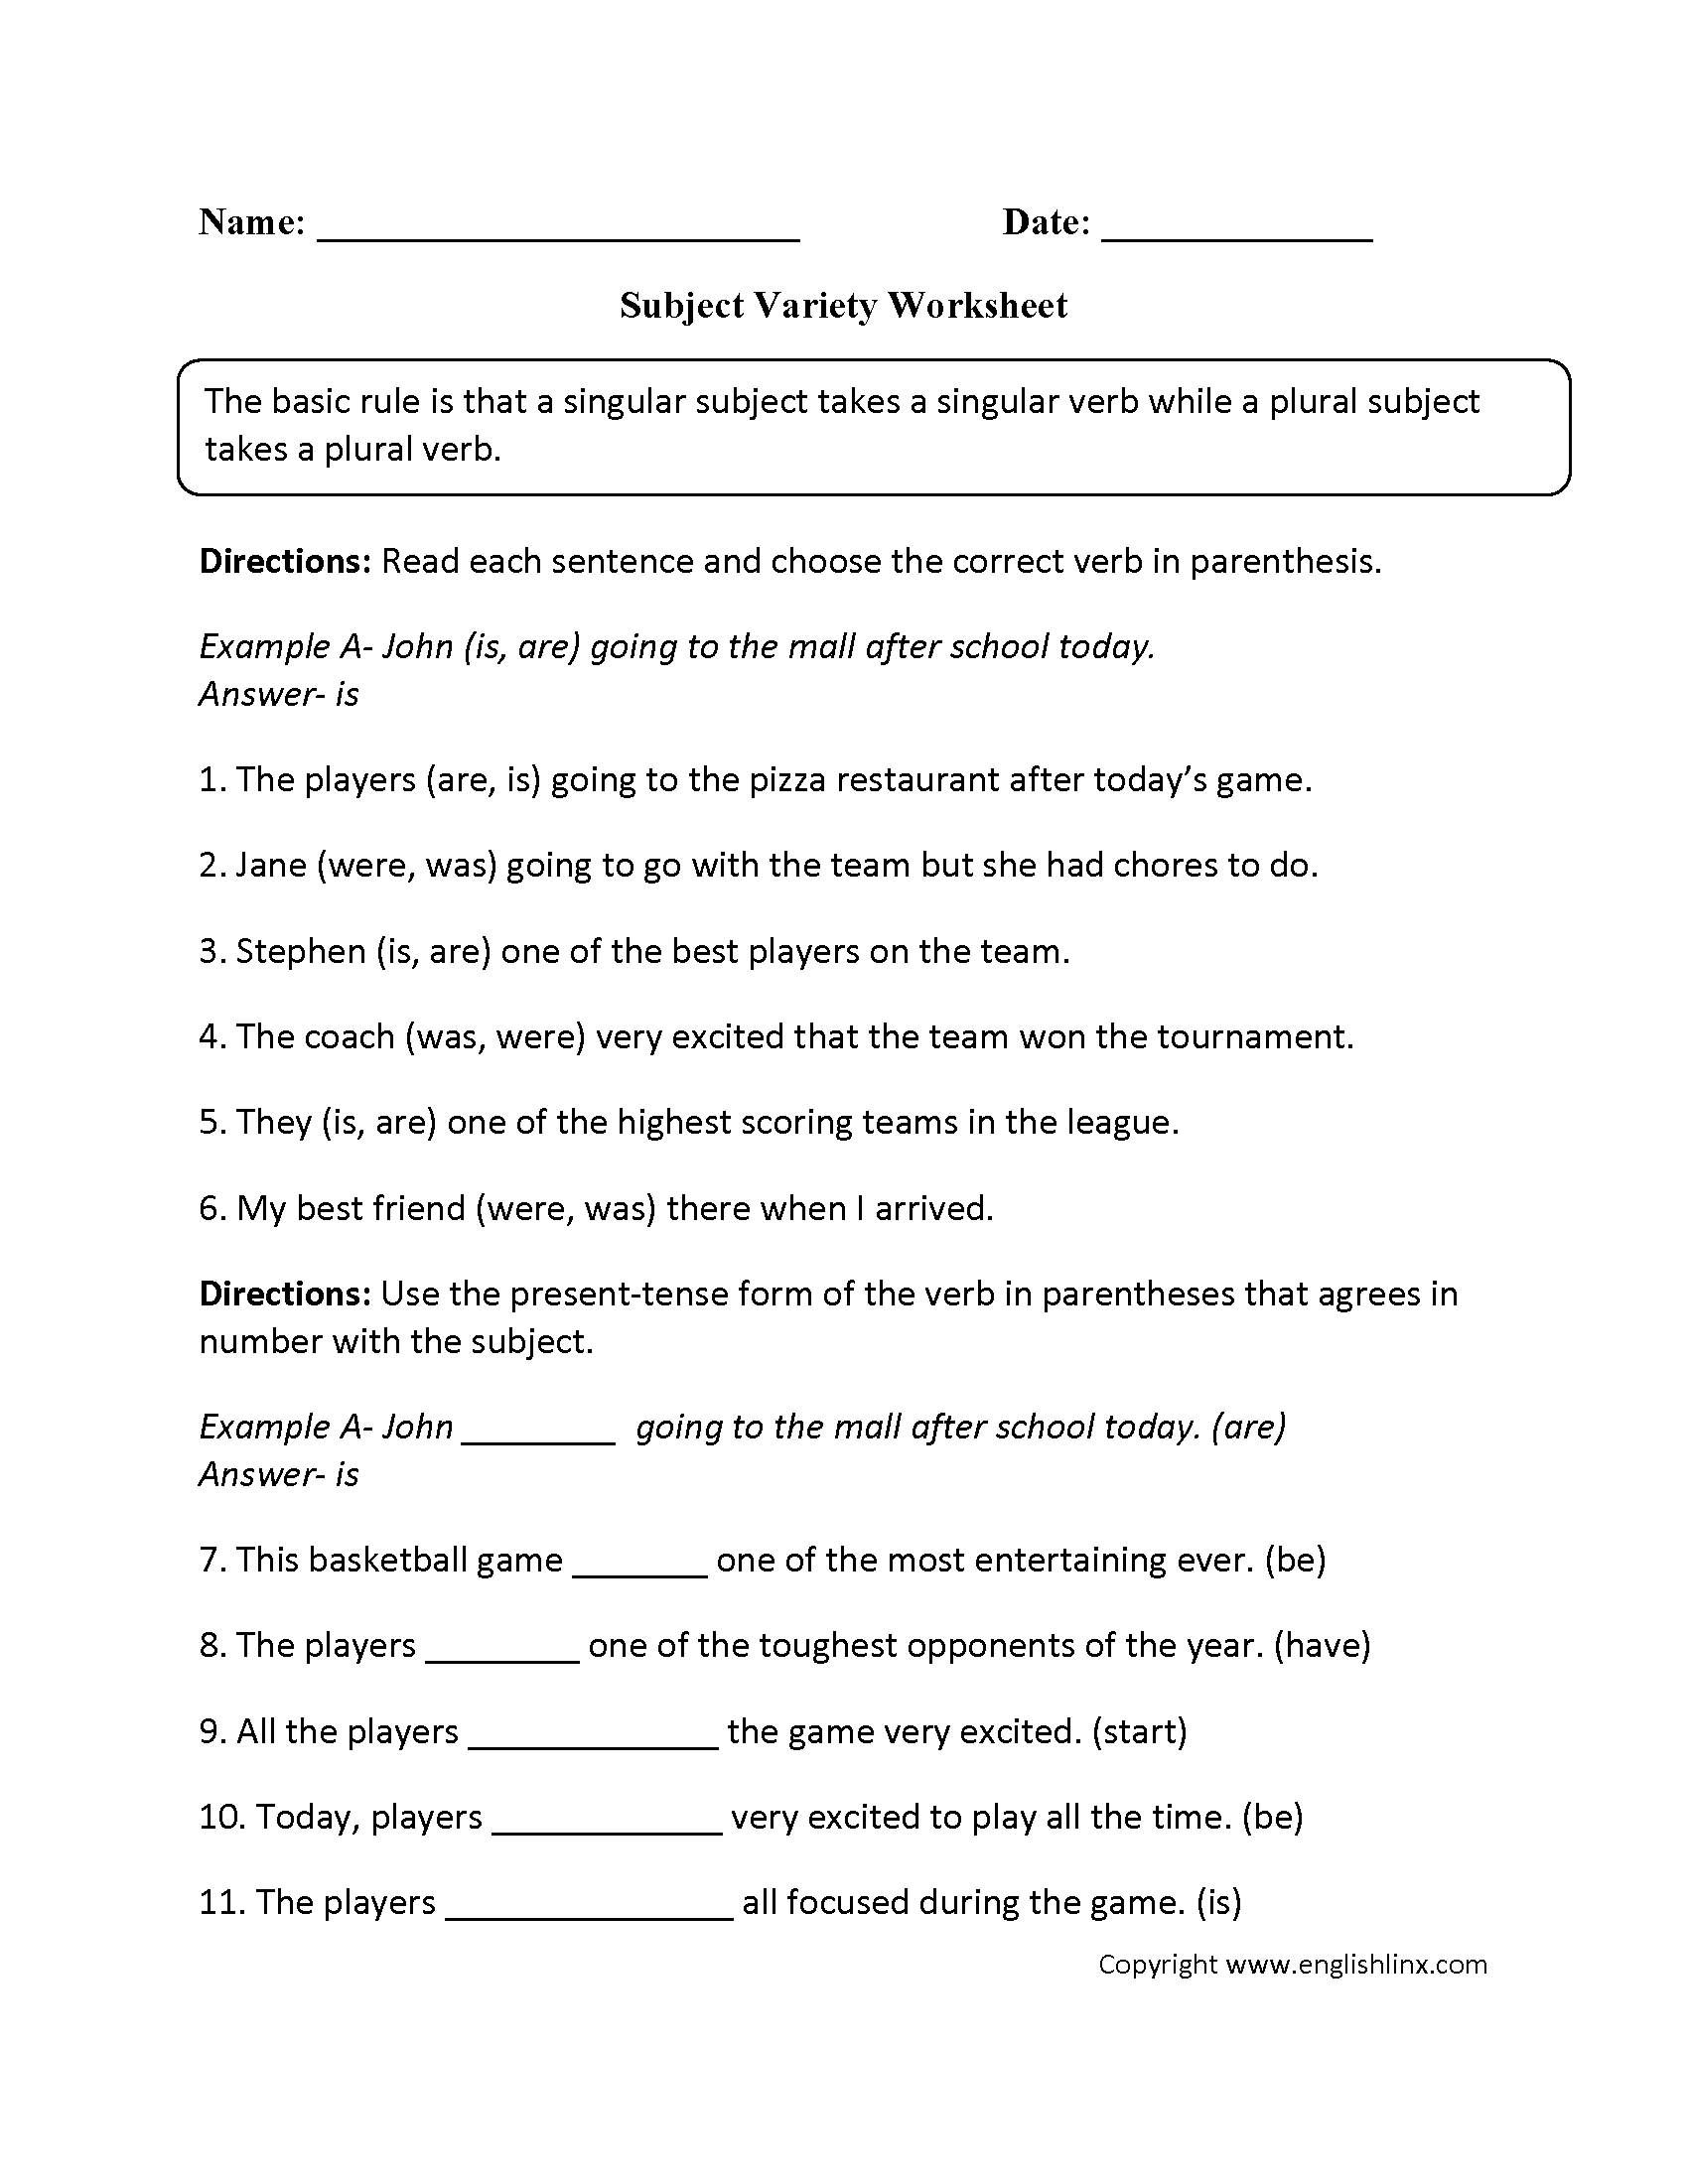 Worksheets 7th Grade Grammar Worksheets free worksheets library download and print on subject verb agreement fun printable third grade grammar